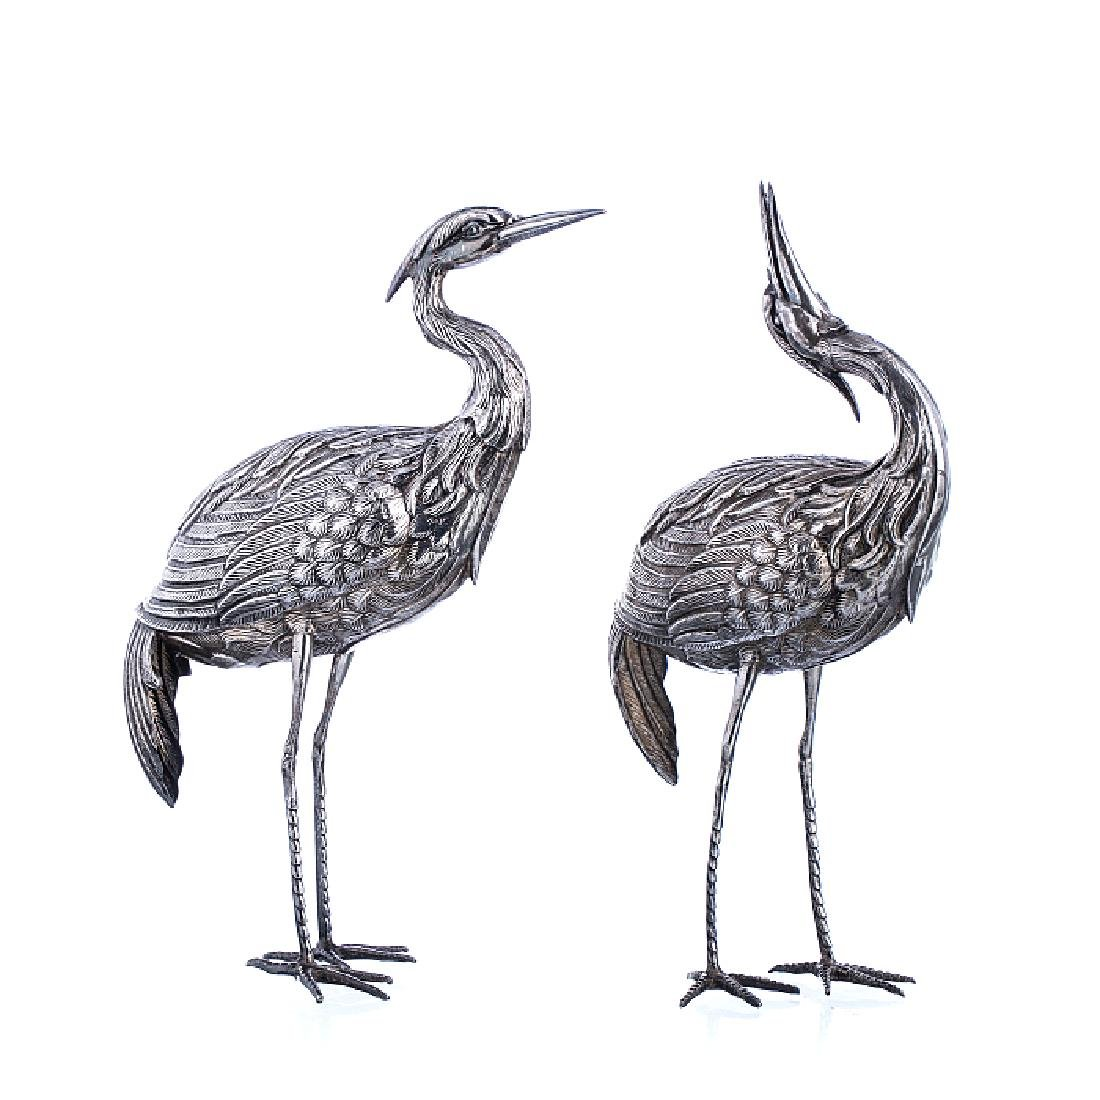 Two cranes in Spanish silver